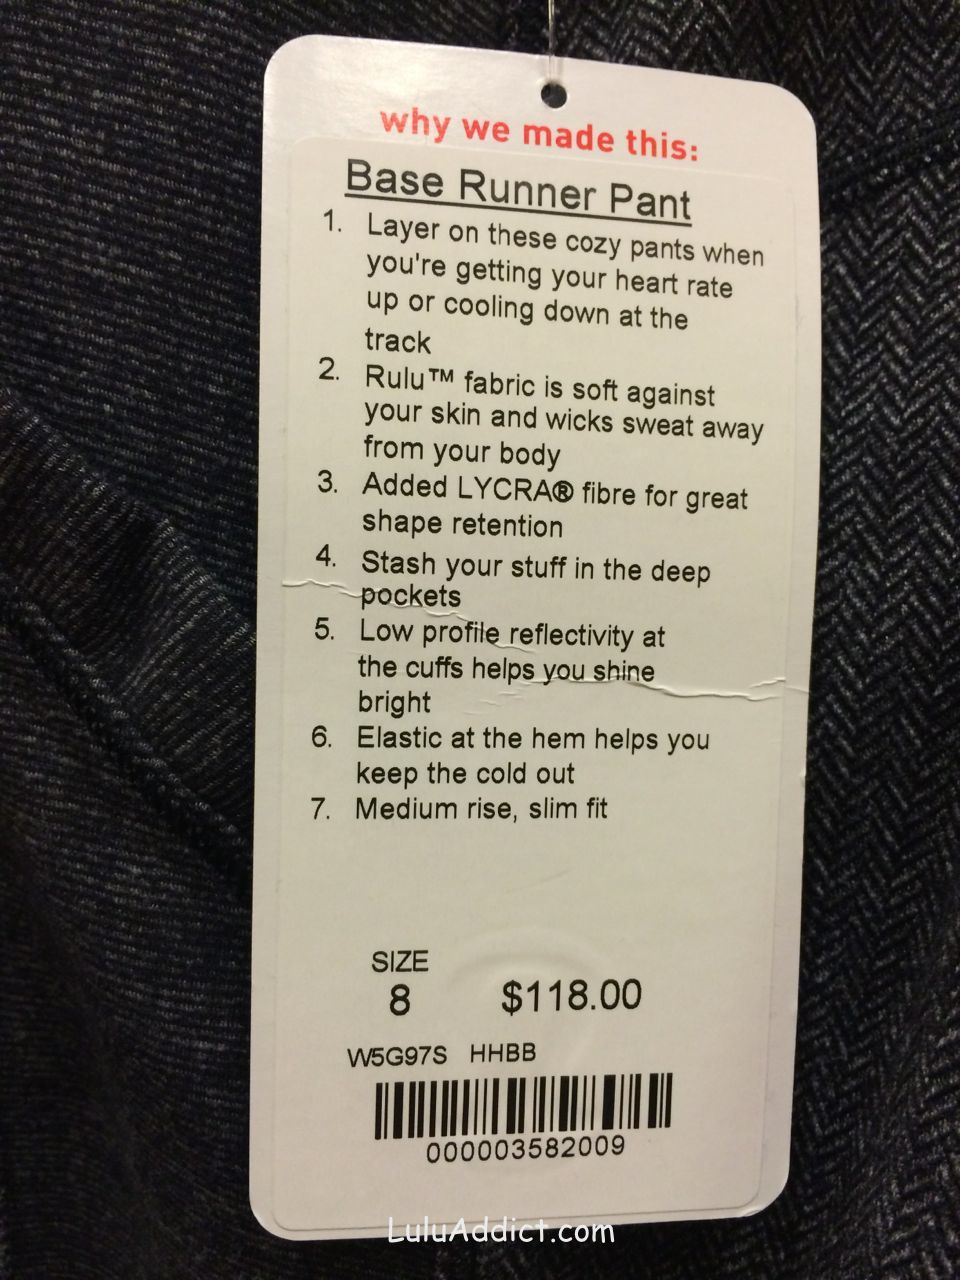 lululemon base runner pant price tag